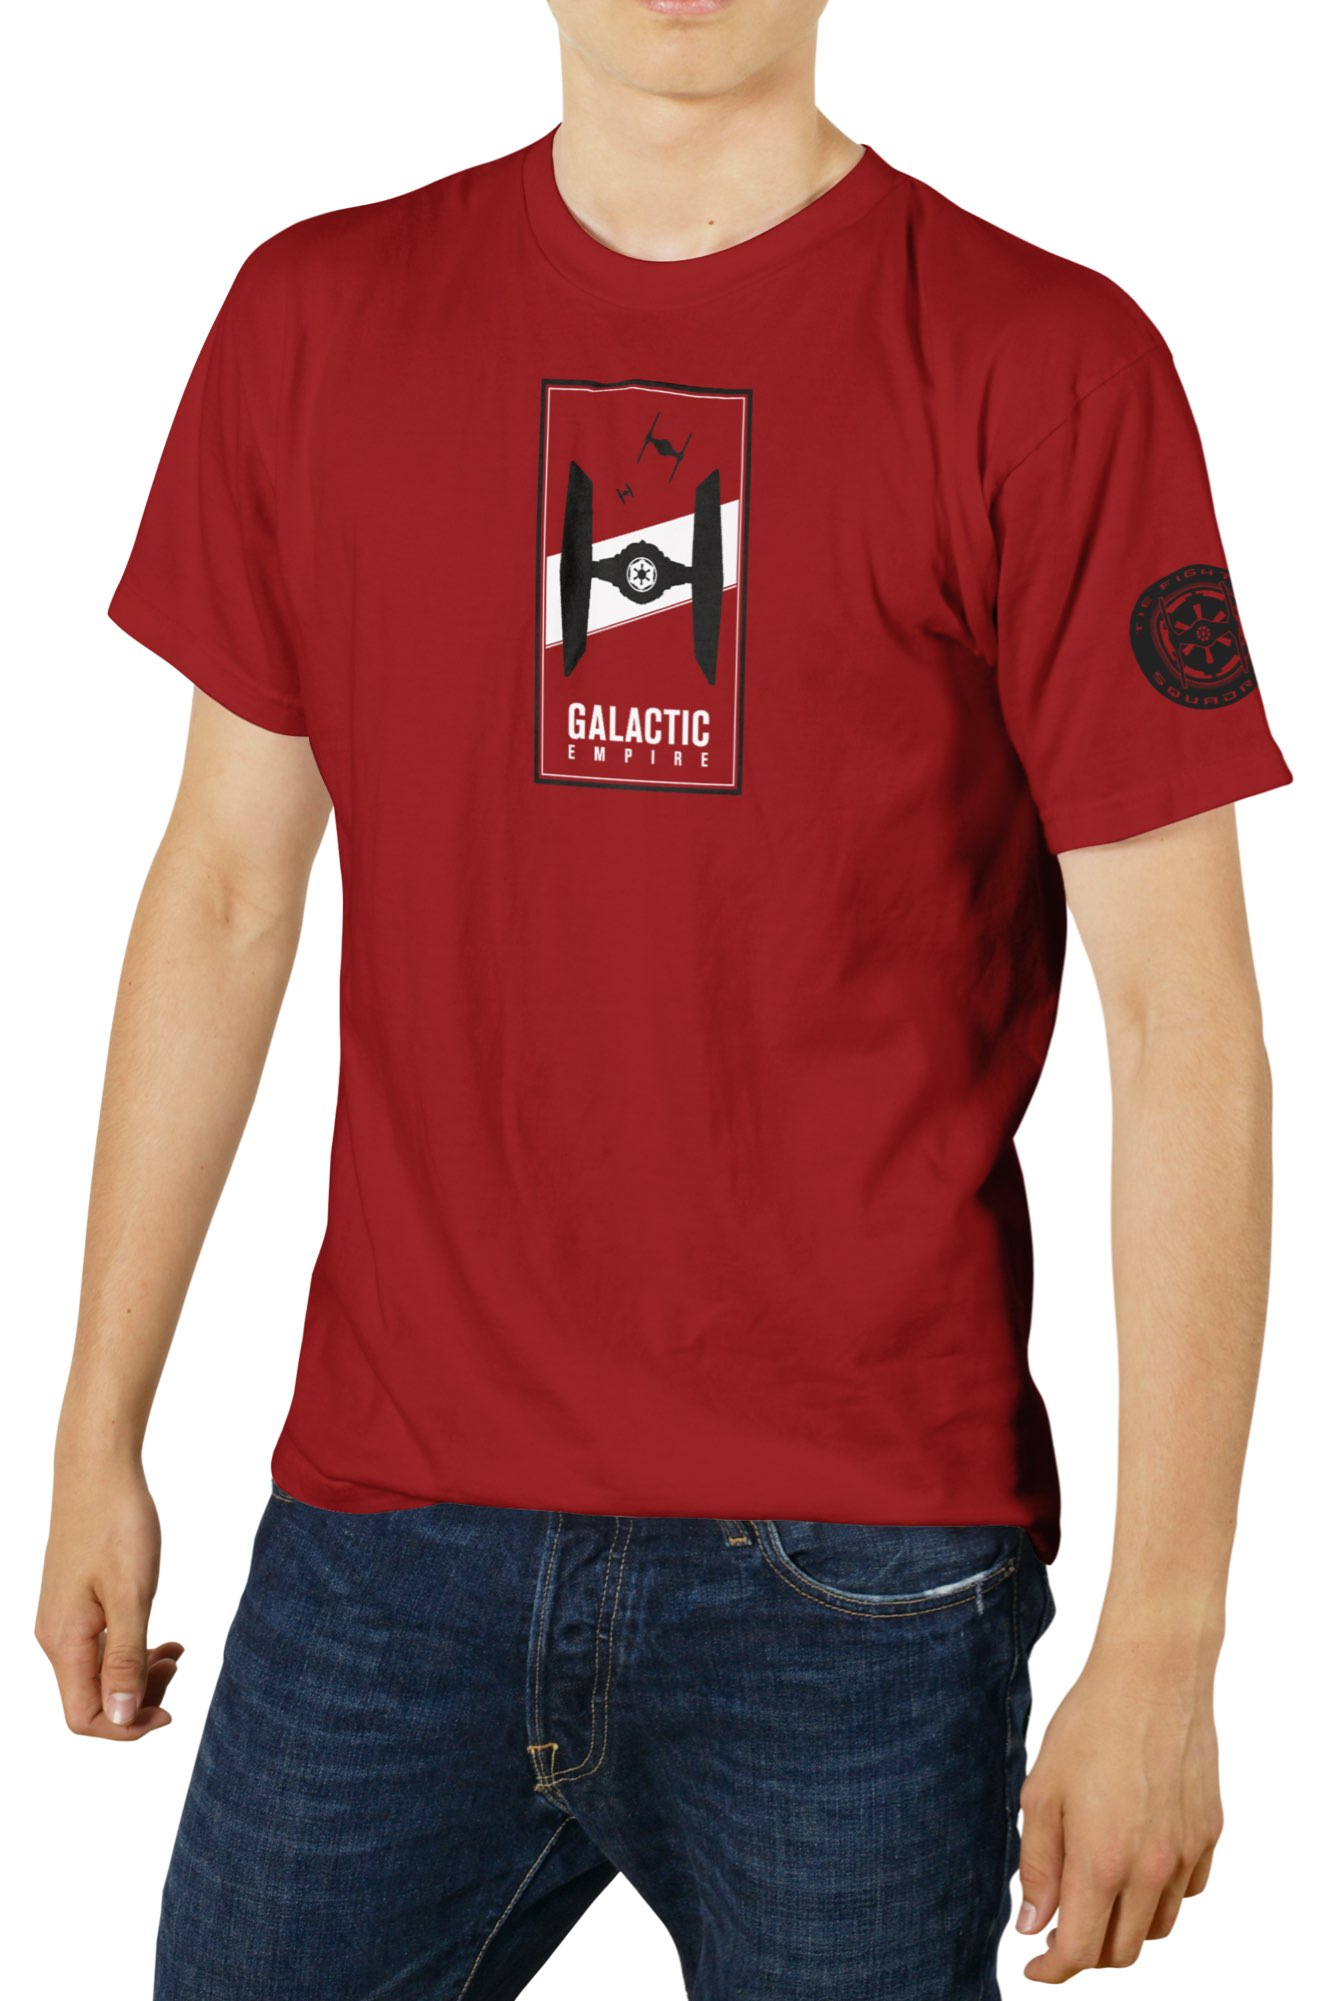 GALACTIC EMPIRE CAMISETA ROJA CHICO T-XL STAR WARS